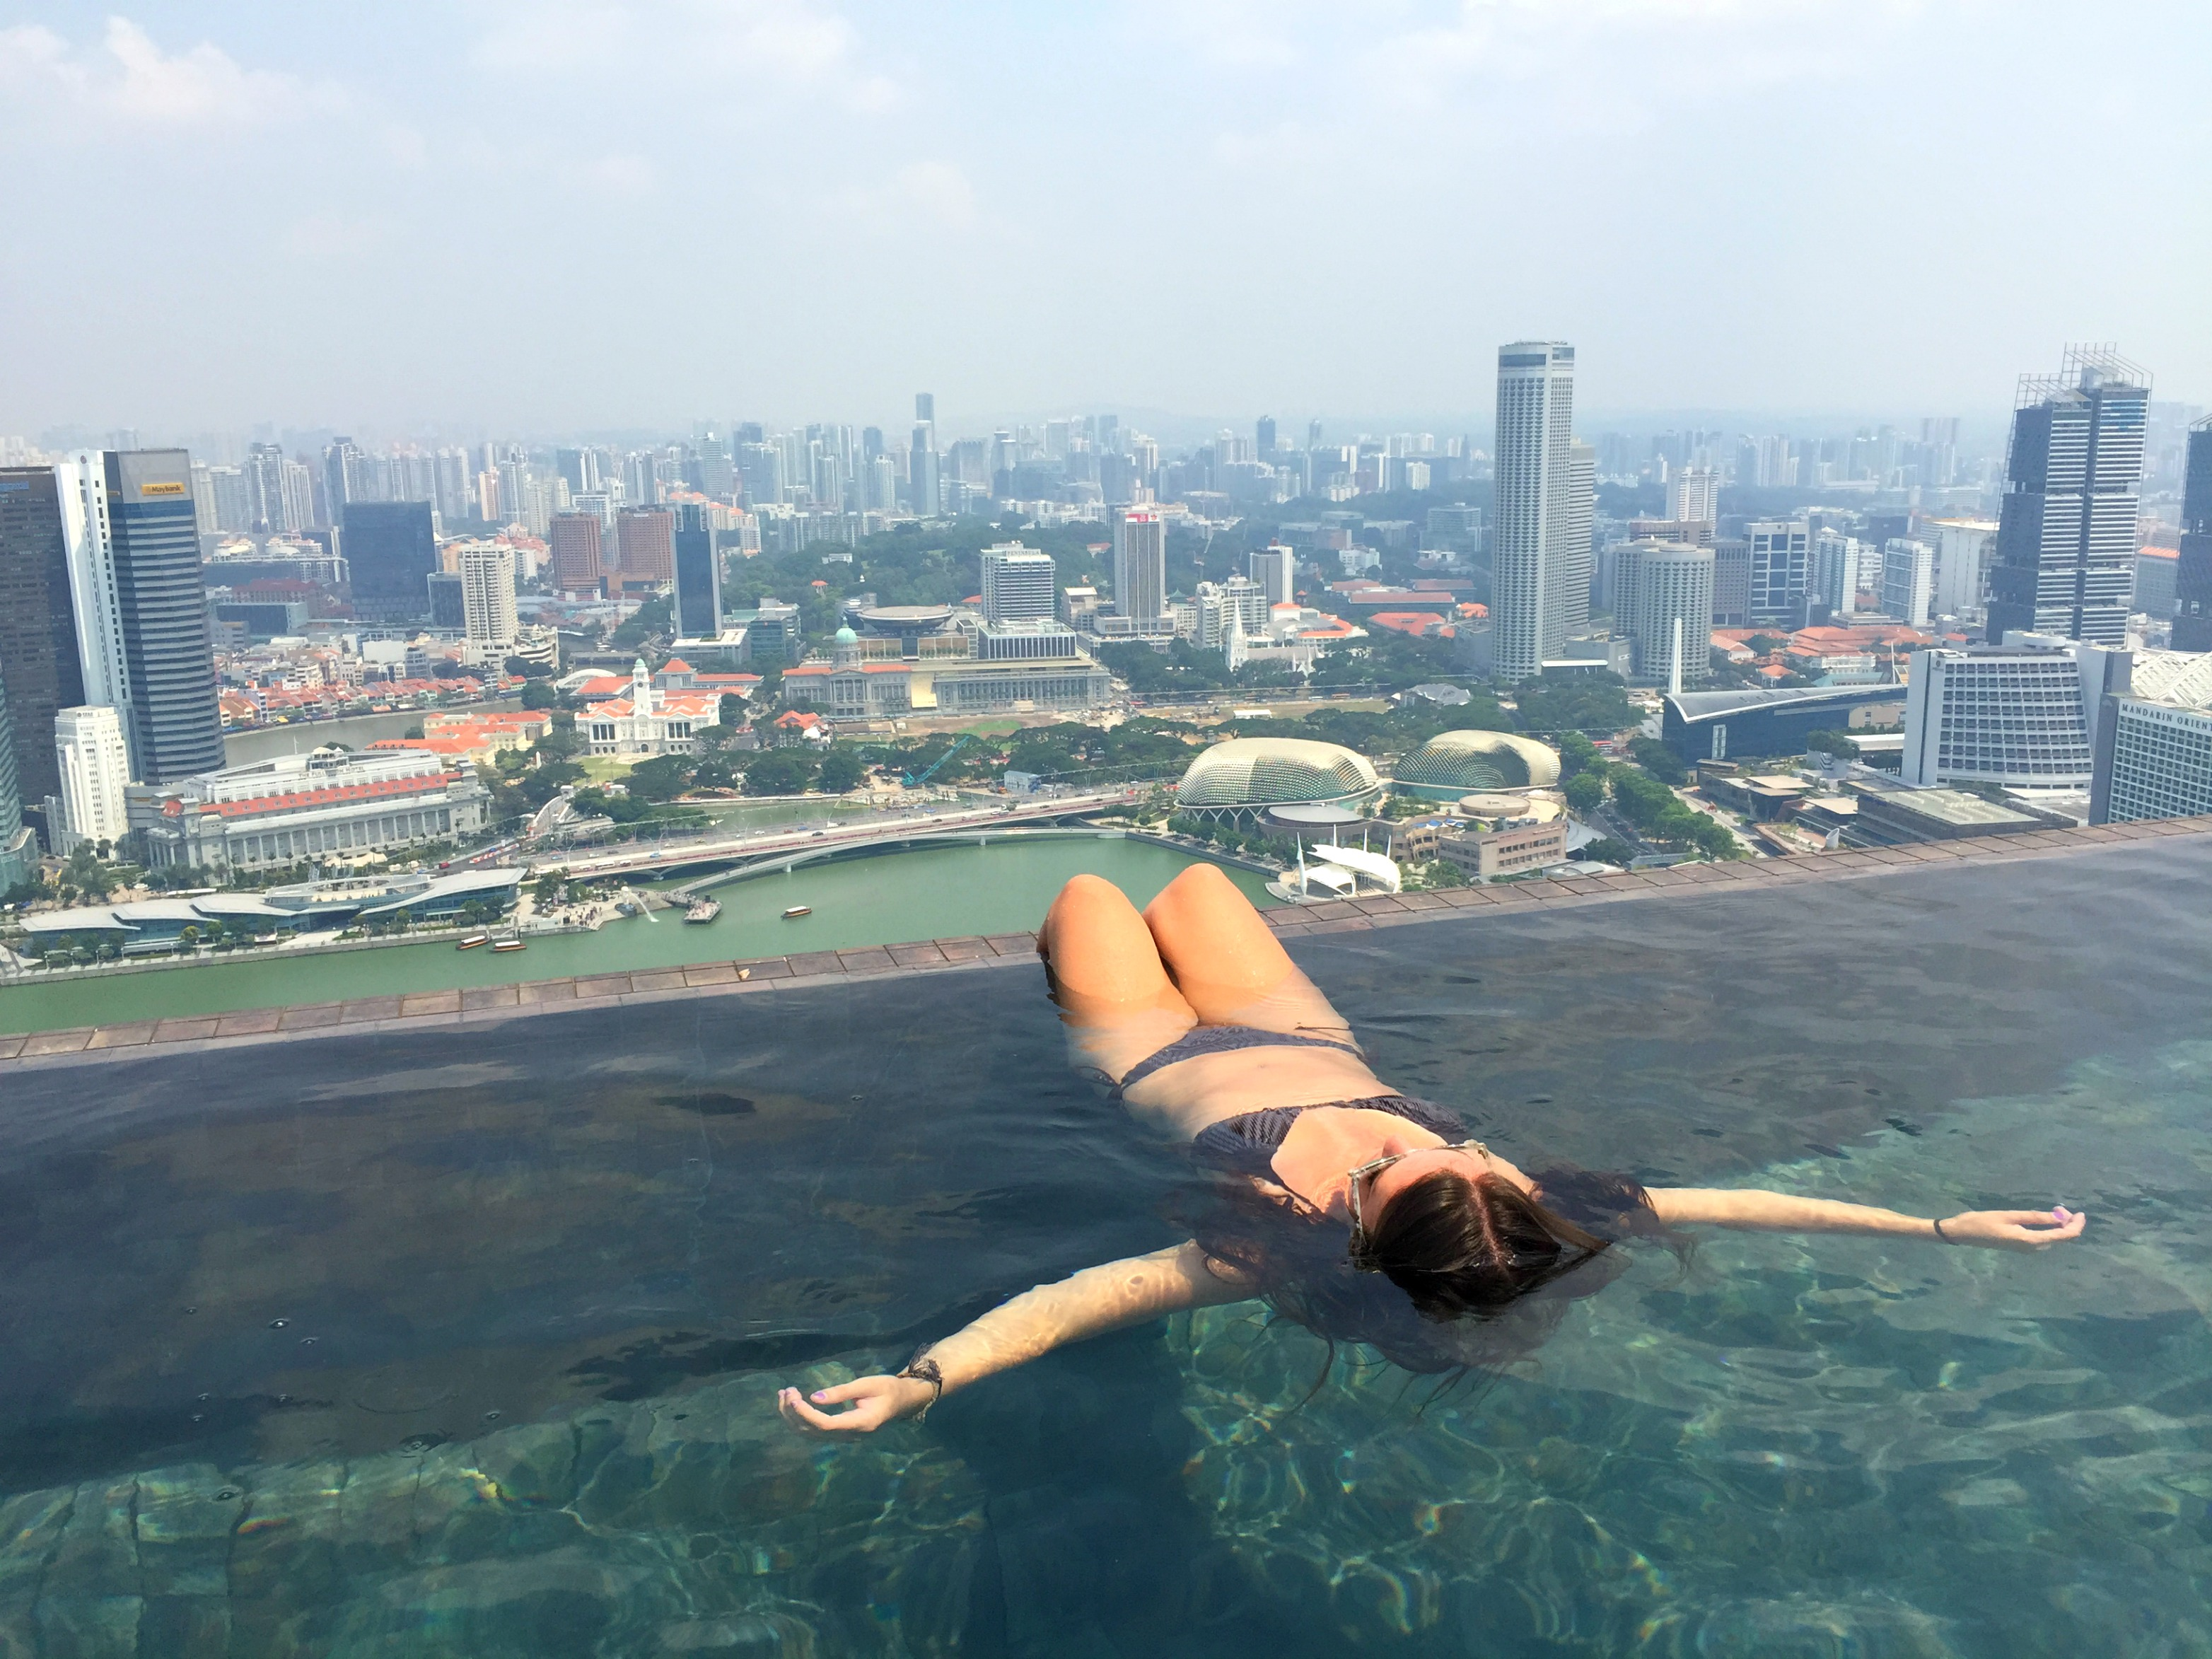 Marina bay sands infinity pool singapore - Marina Bay Sands Hotel Review Luxury Travel Intrepid